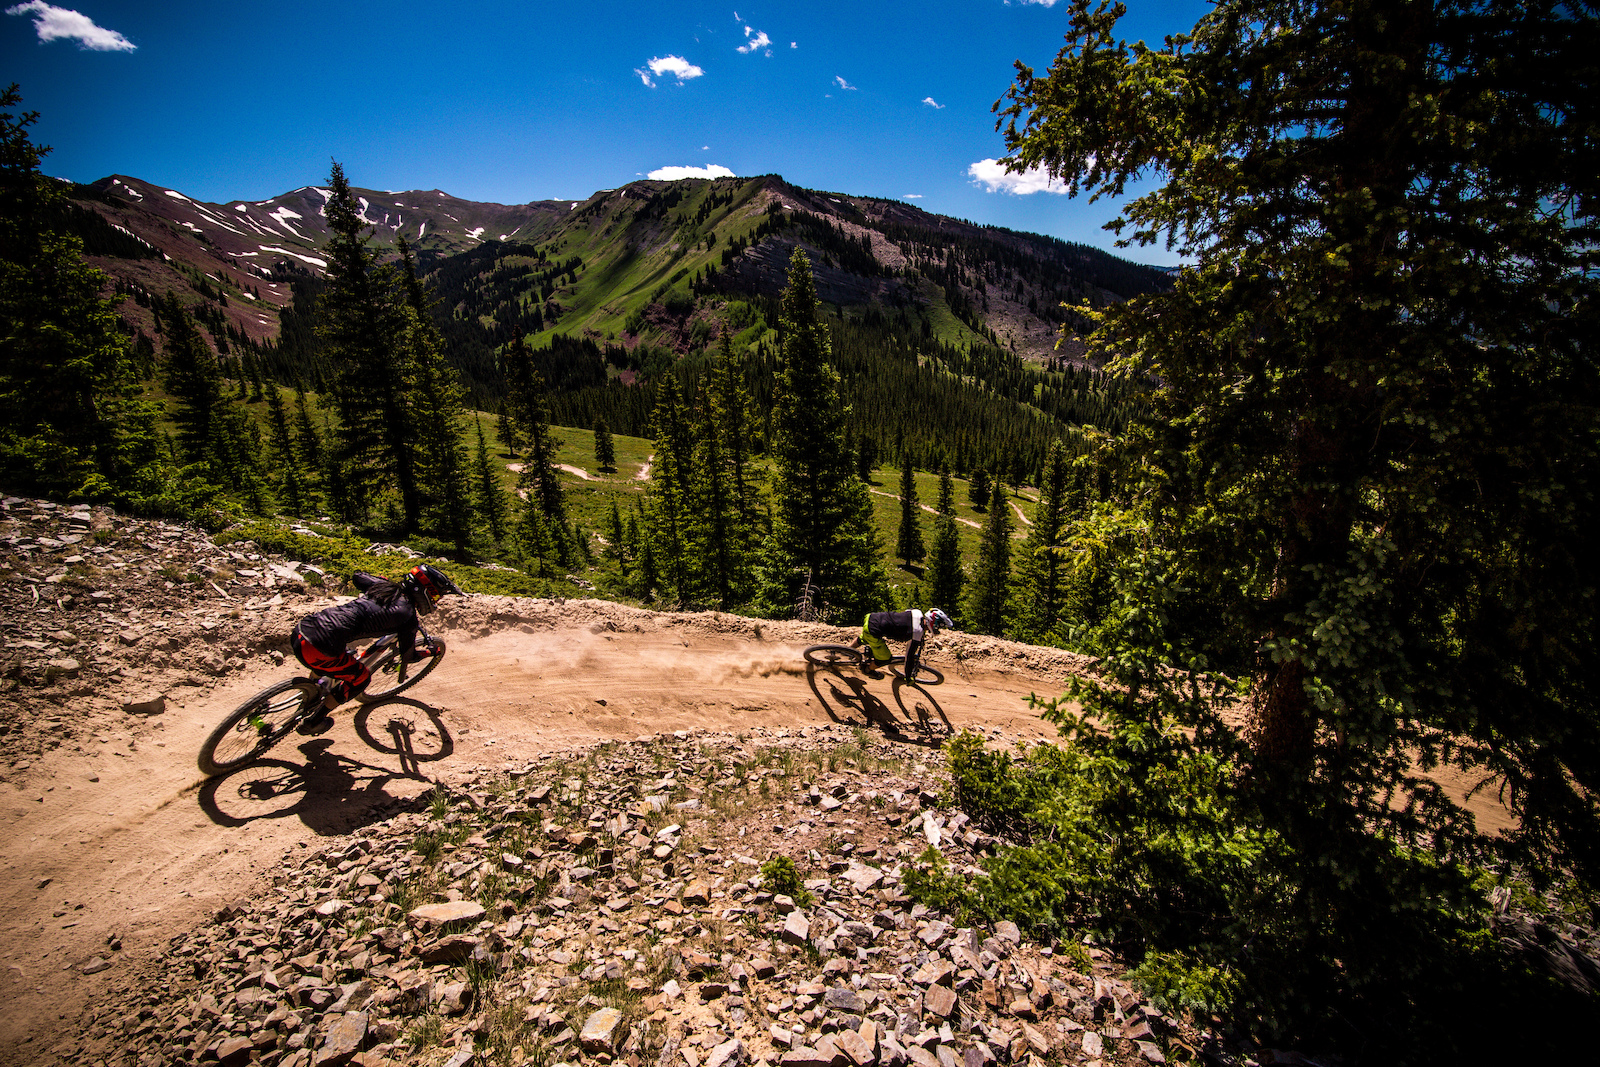 Snowmass was basically a bike park plopped in a place for sightseeing.